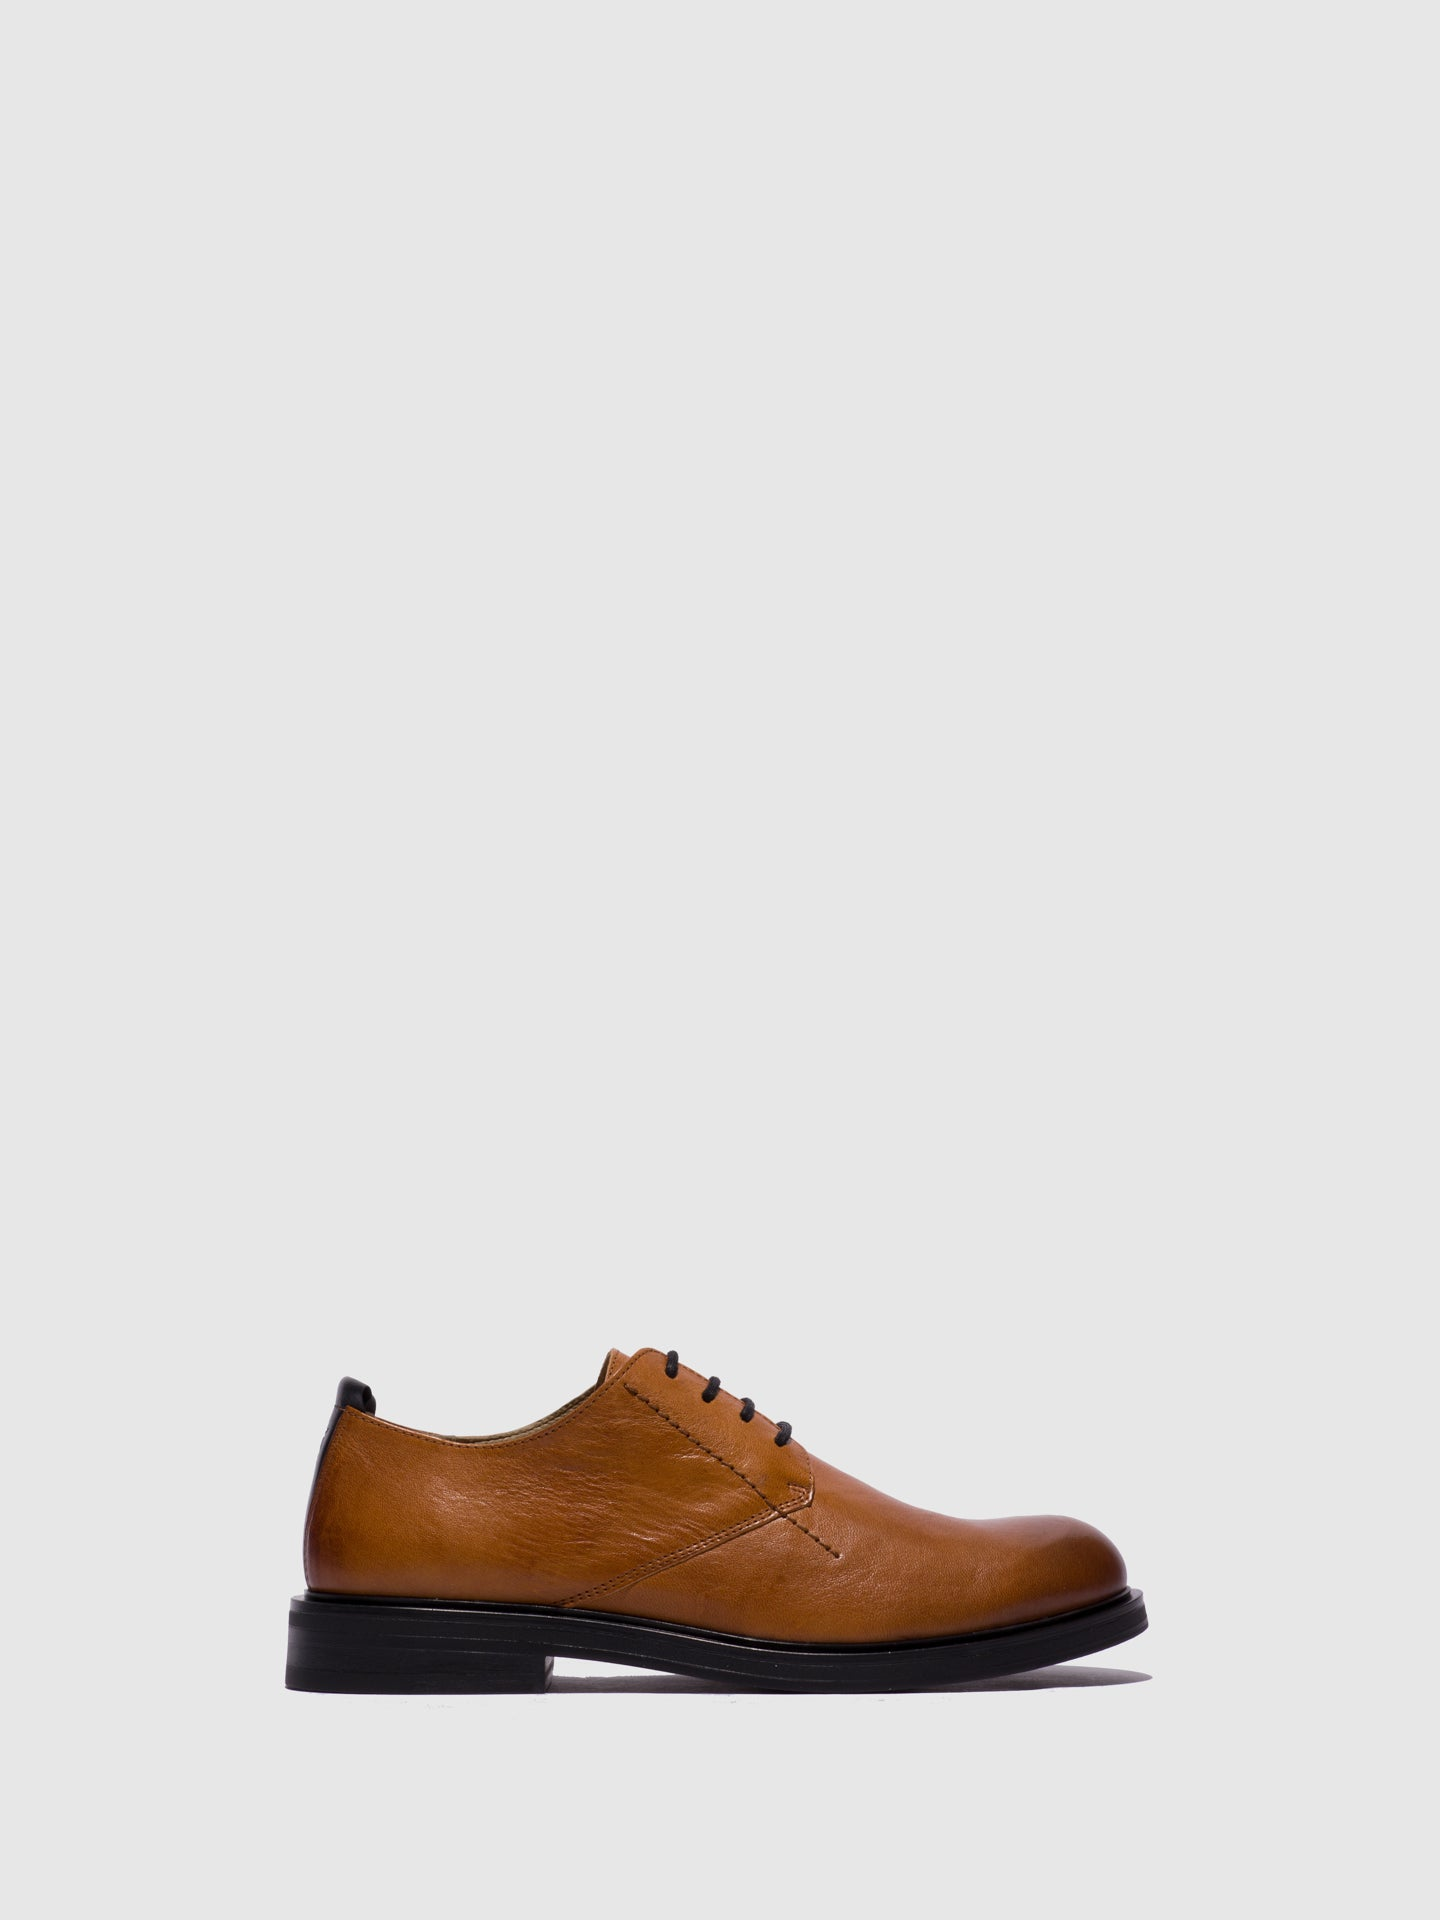 Fly London Camel Lace-up Shoes